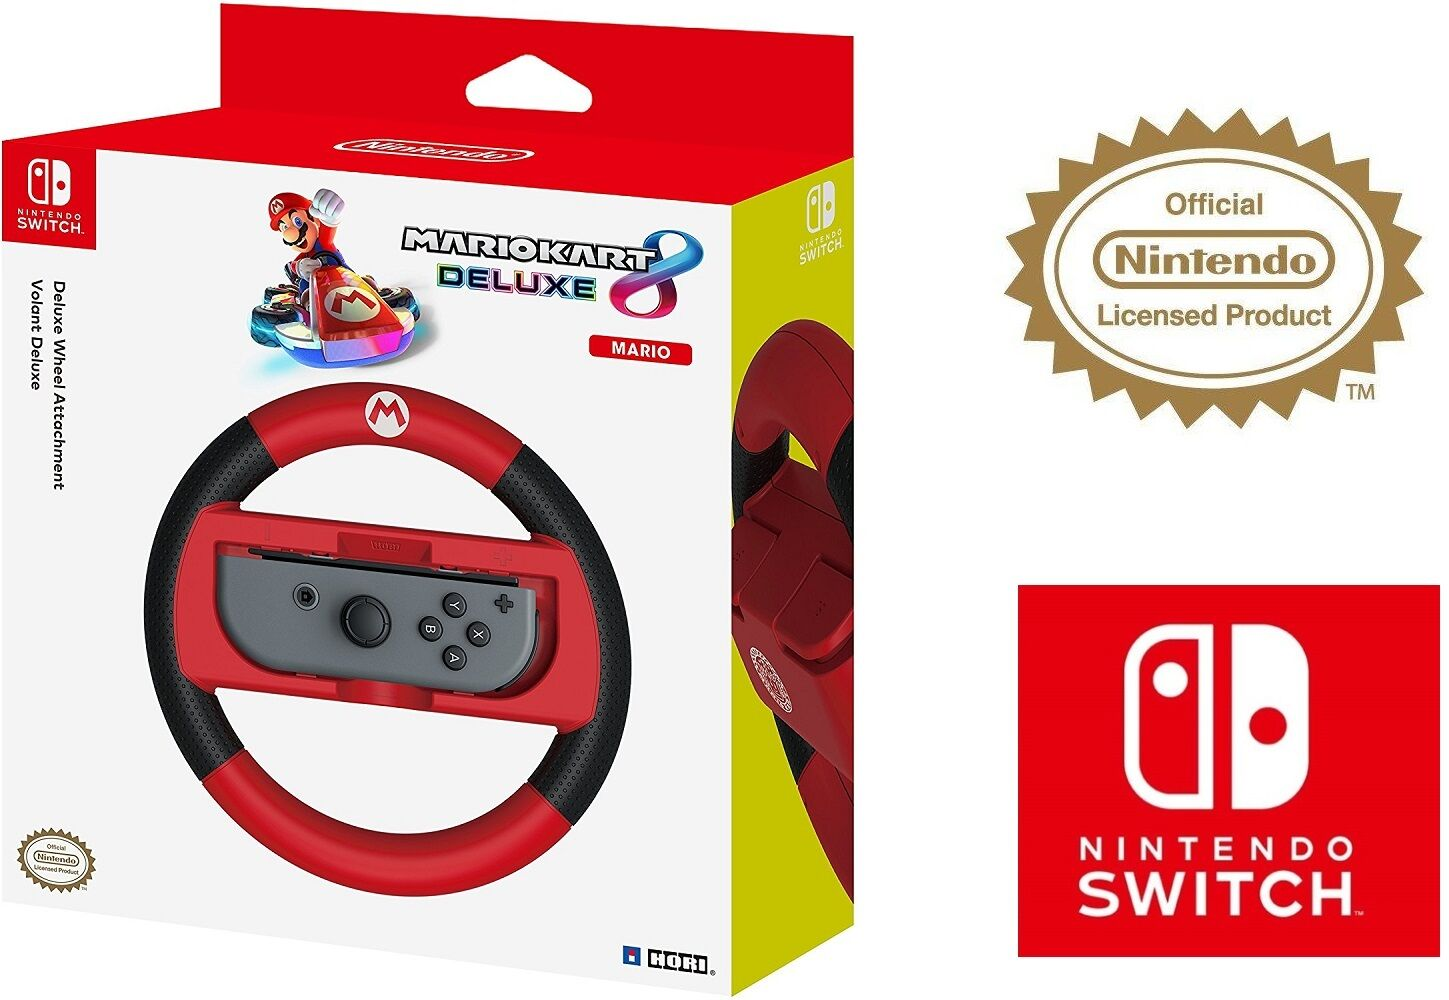 Hori Official Nintendo Switch Mario Kart 8 Deluxe Wheel - Mario Version